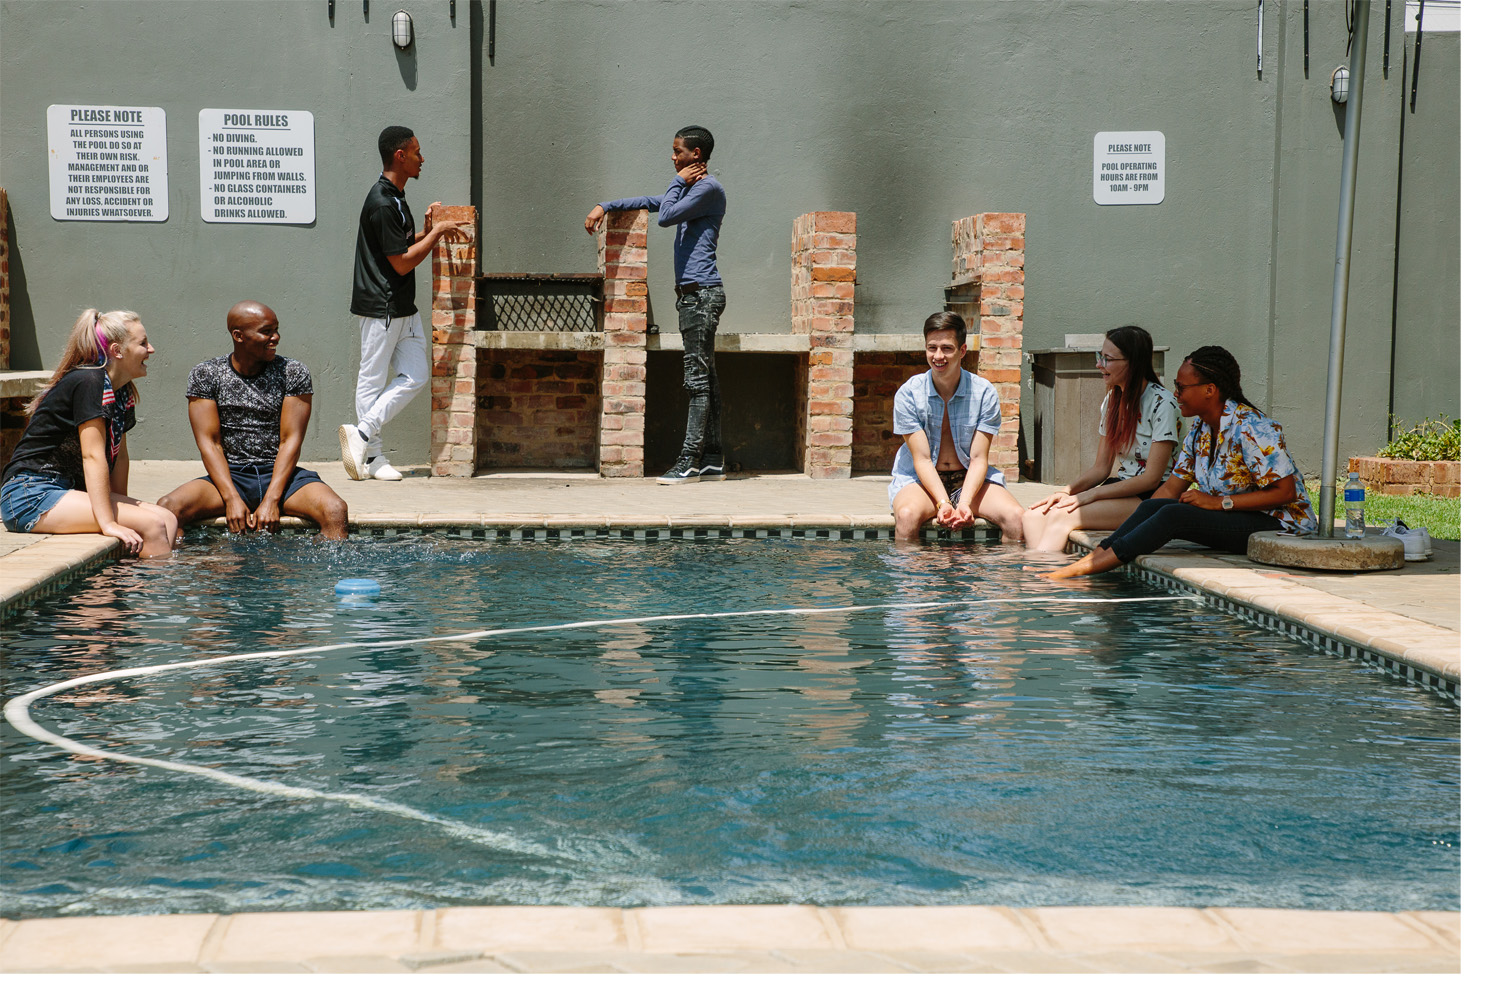 Eastwood_Village_Pool/Braai_Area